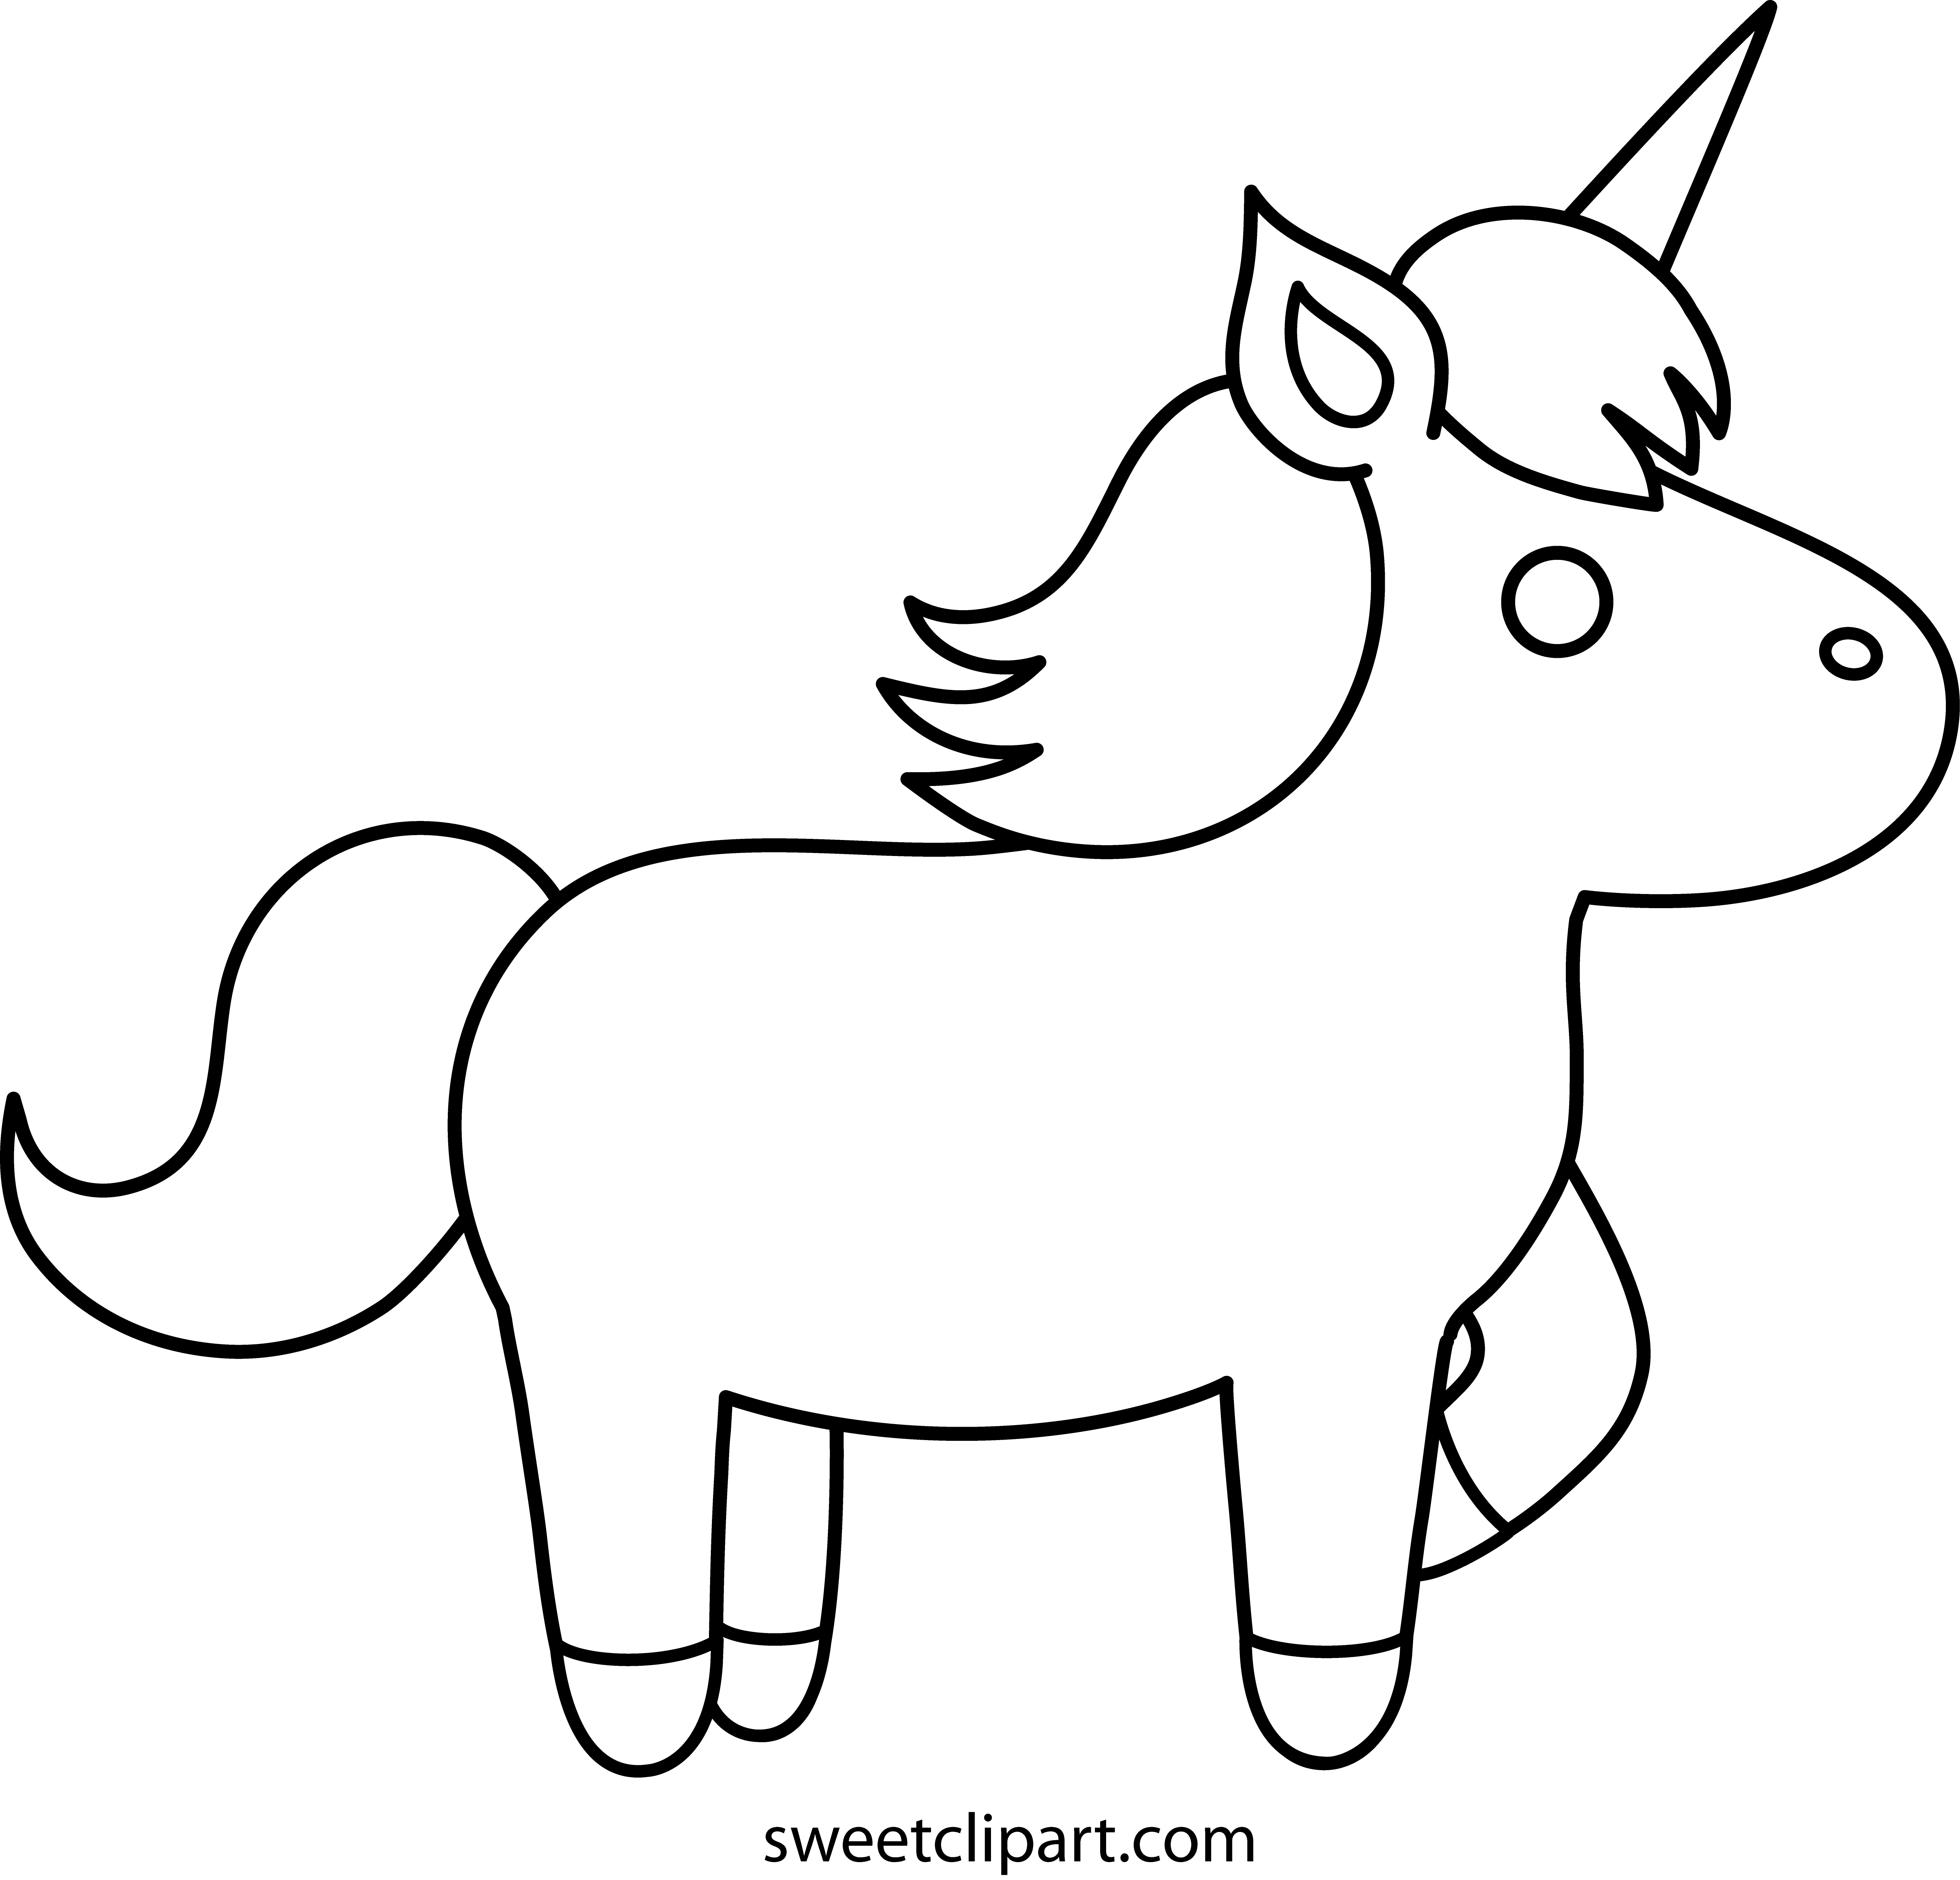 easy unicorn coloring pages Simple Unicorn Outline